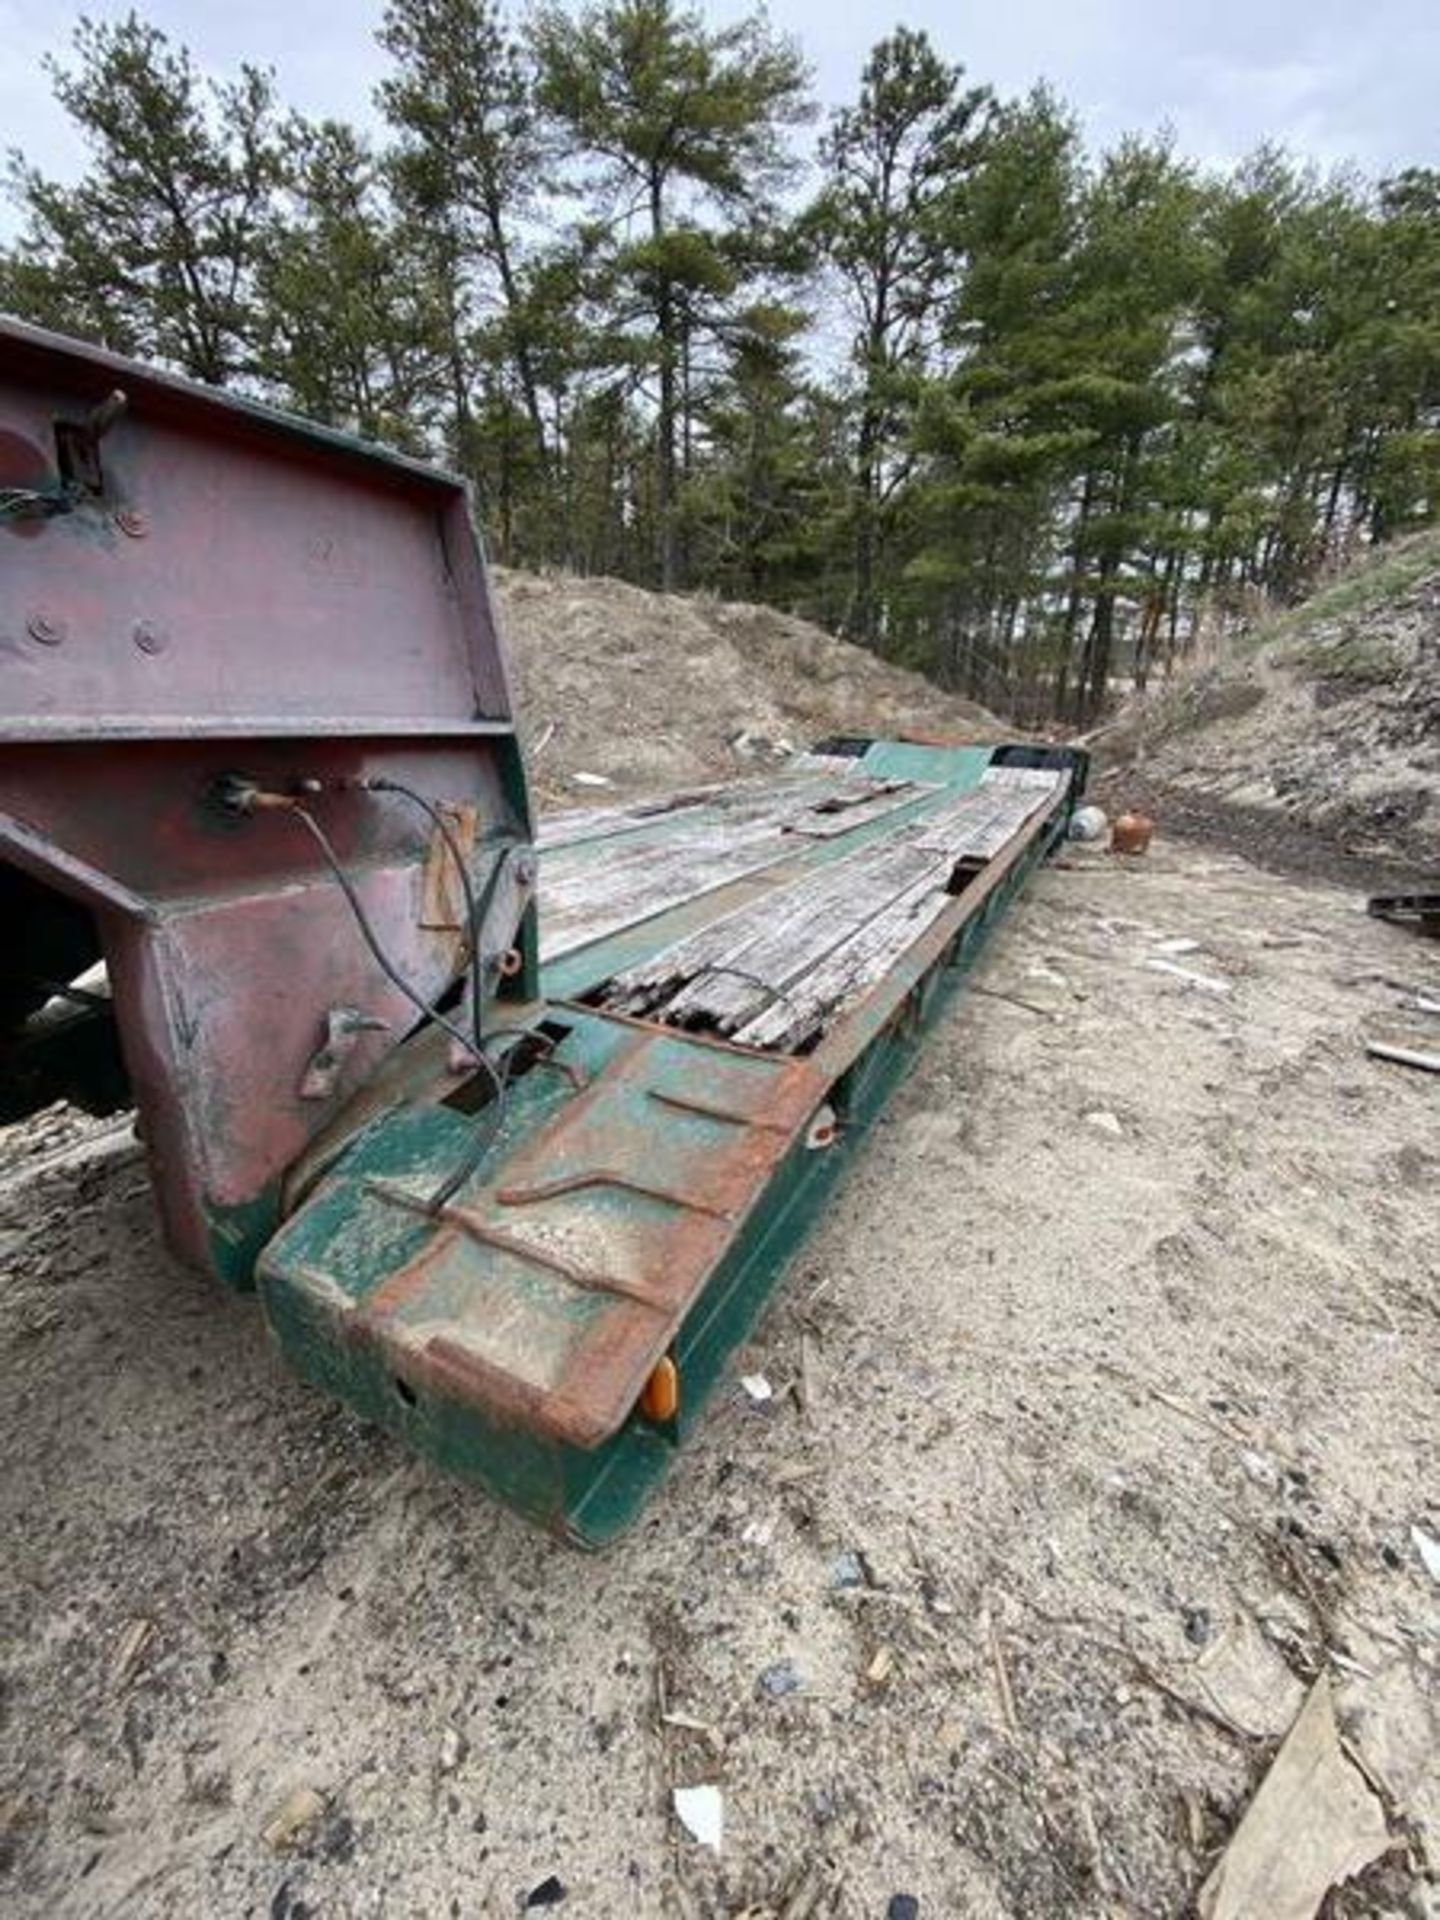 1973 General 35 Ton Low Bed Trailer VIN 35GHG73378R, Have Title - Image 3 of 11